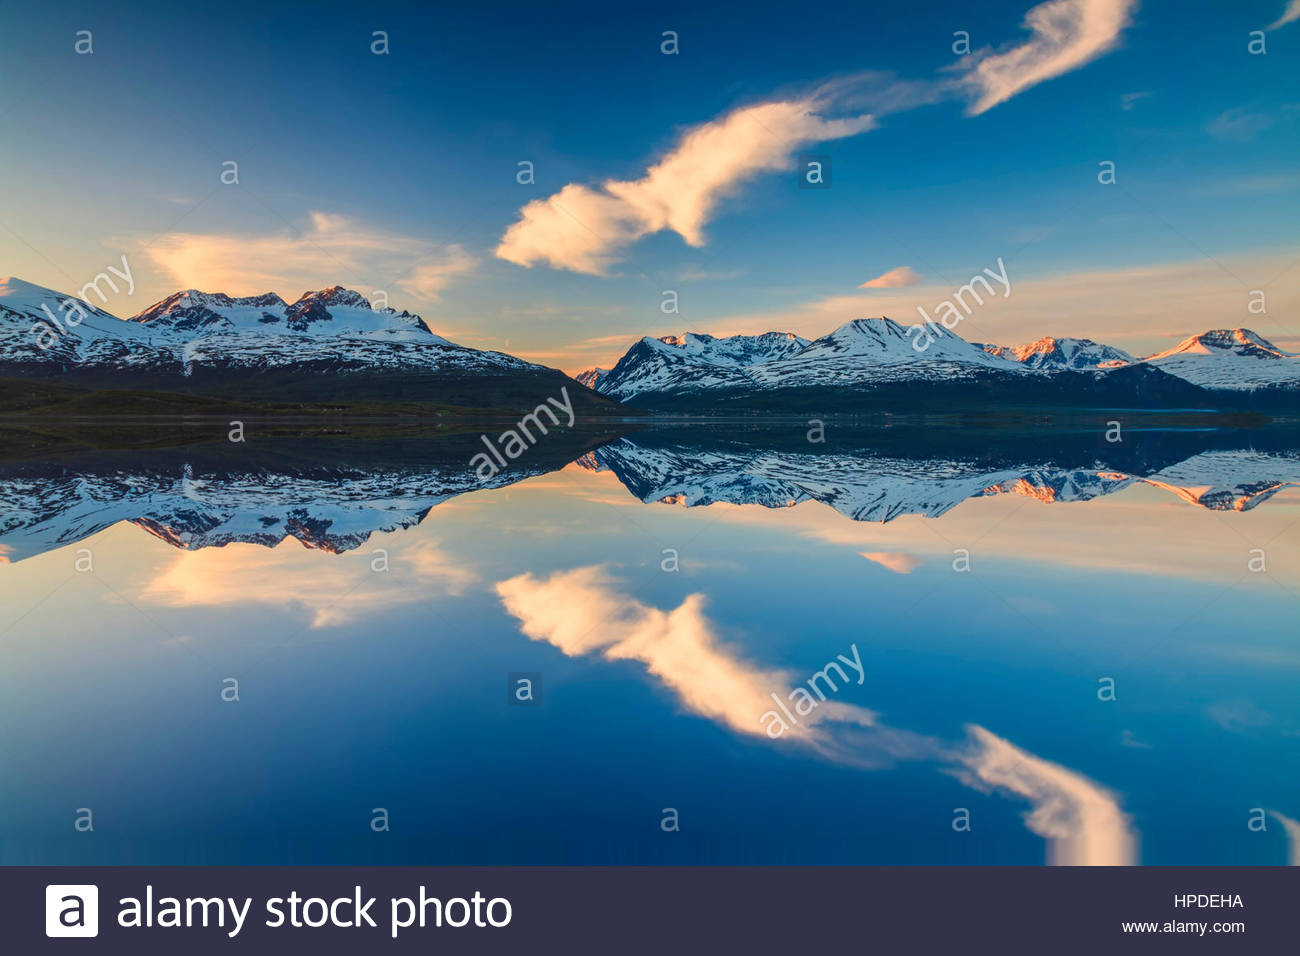 Reflection of of mountains in the Norwegian fjord at sunset. - Stock Image